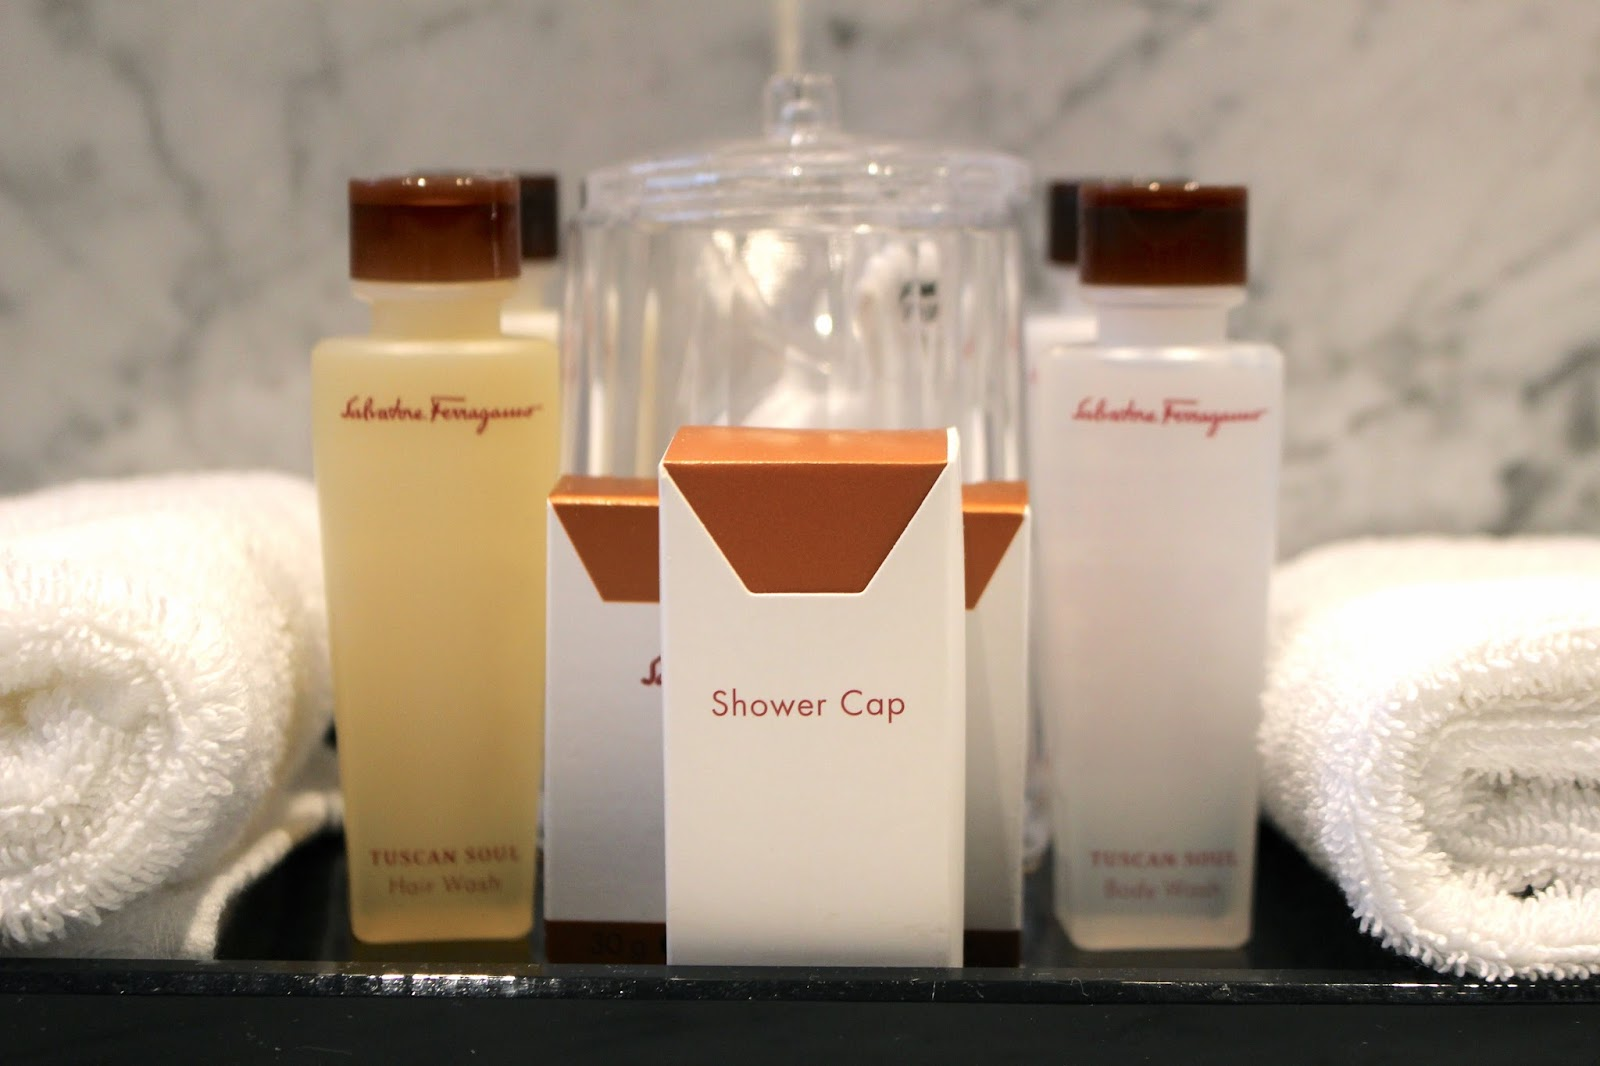 salvatore ferragamo hotel toiletries